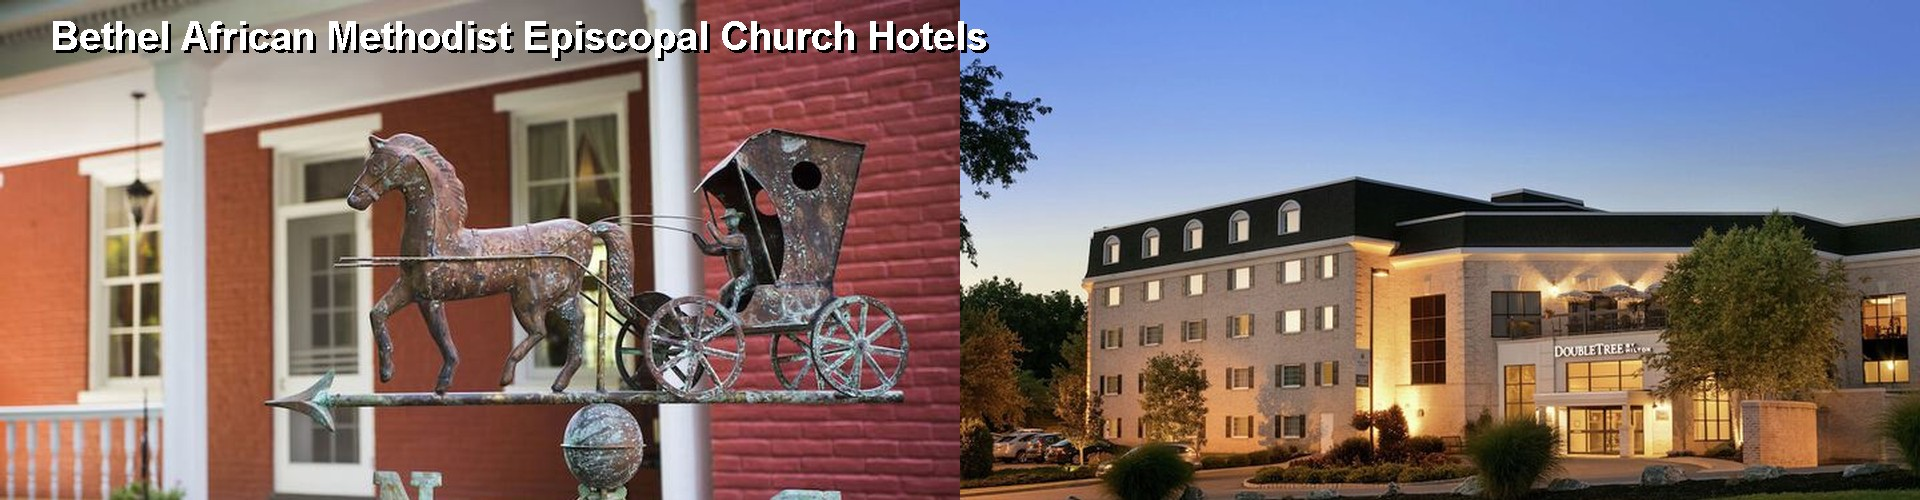 5 Best Hotels near Bethel African Methodist Episcopal Church